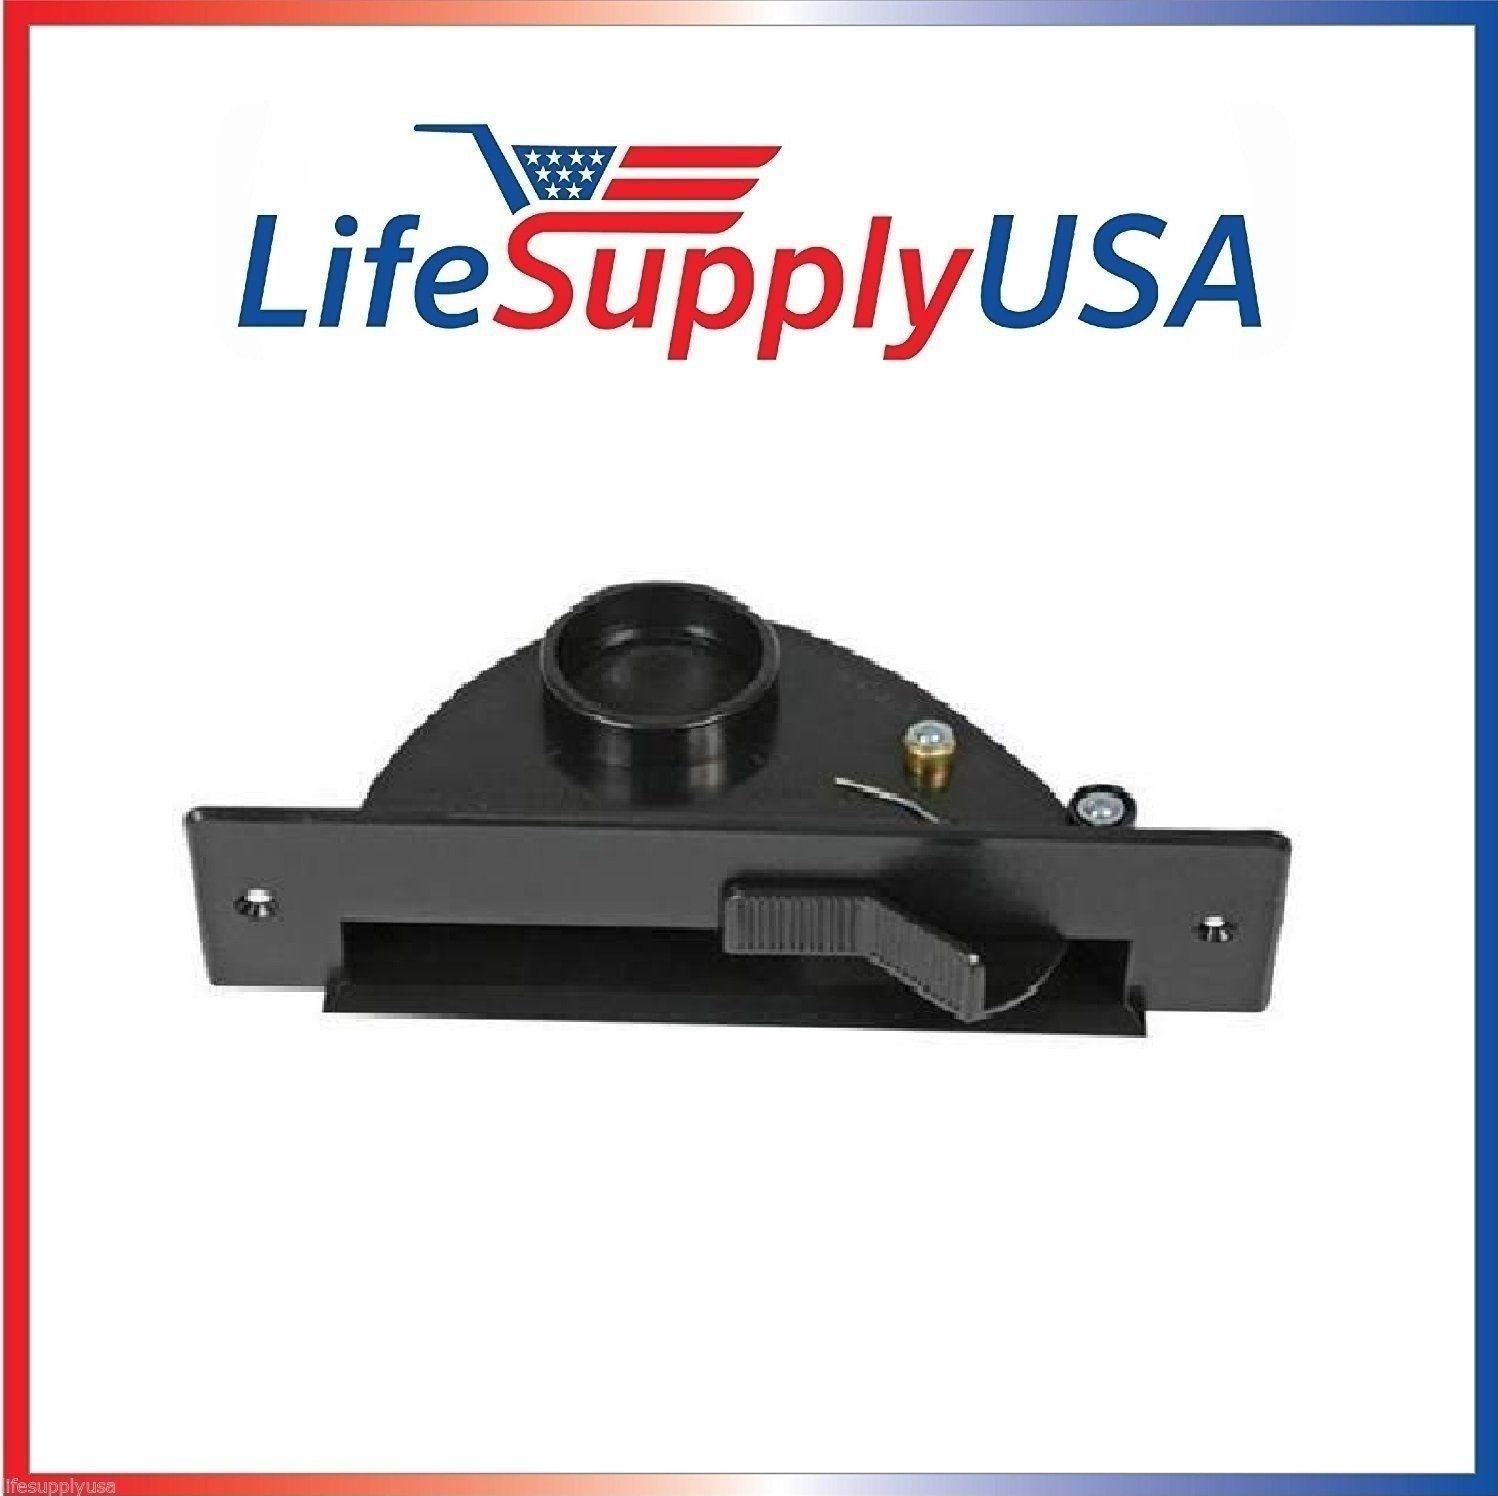 Lifesupplyusa 4 New Central Vac Pan Vacuum Automatic Dustpan Sweep Inlet Valves In Black Visit The Image Link More Detail Central Vacuum Inlet Valve Vacuums